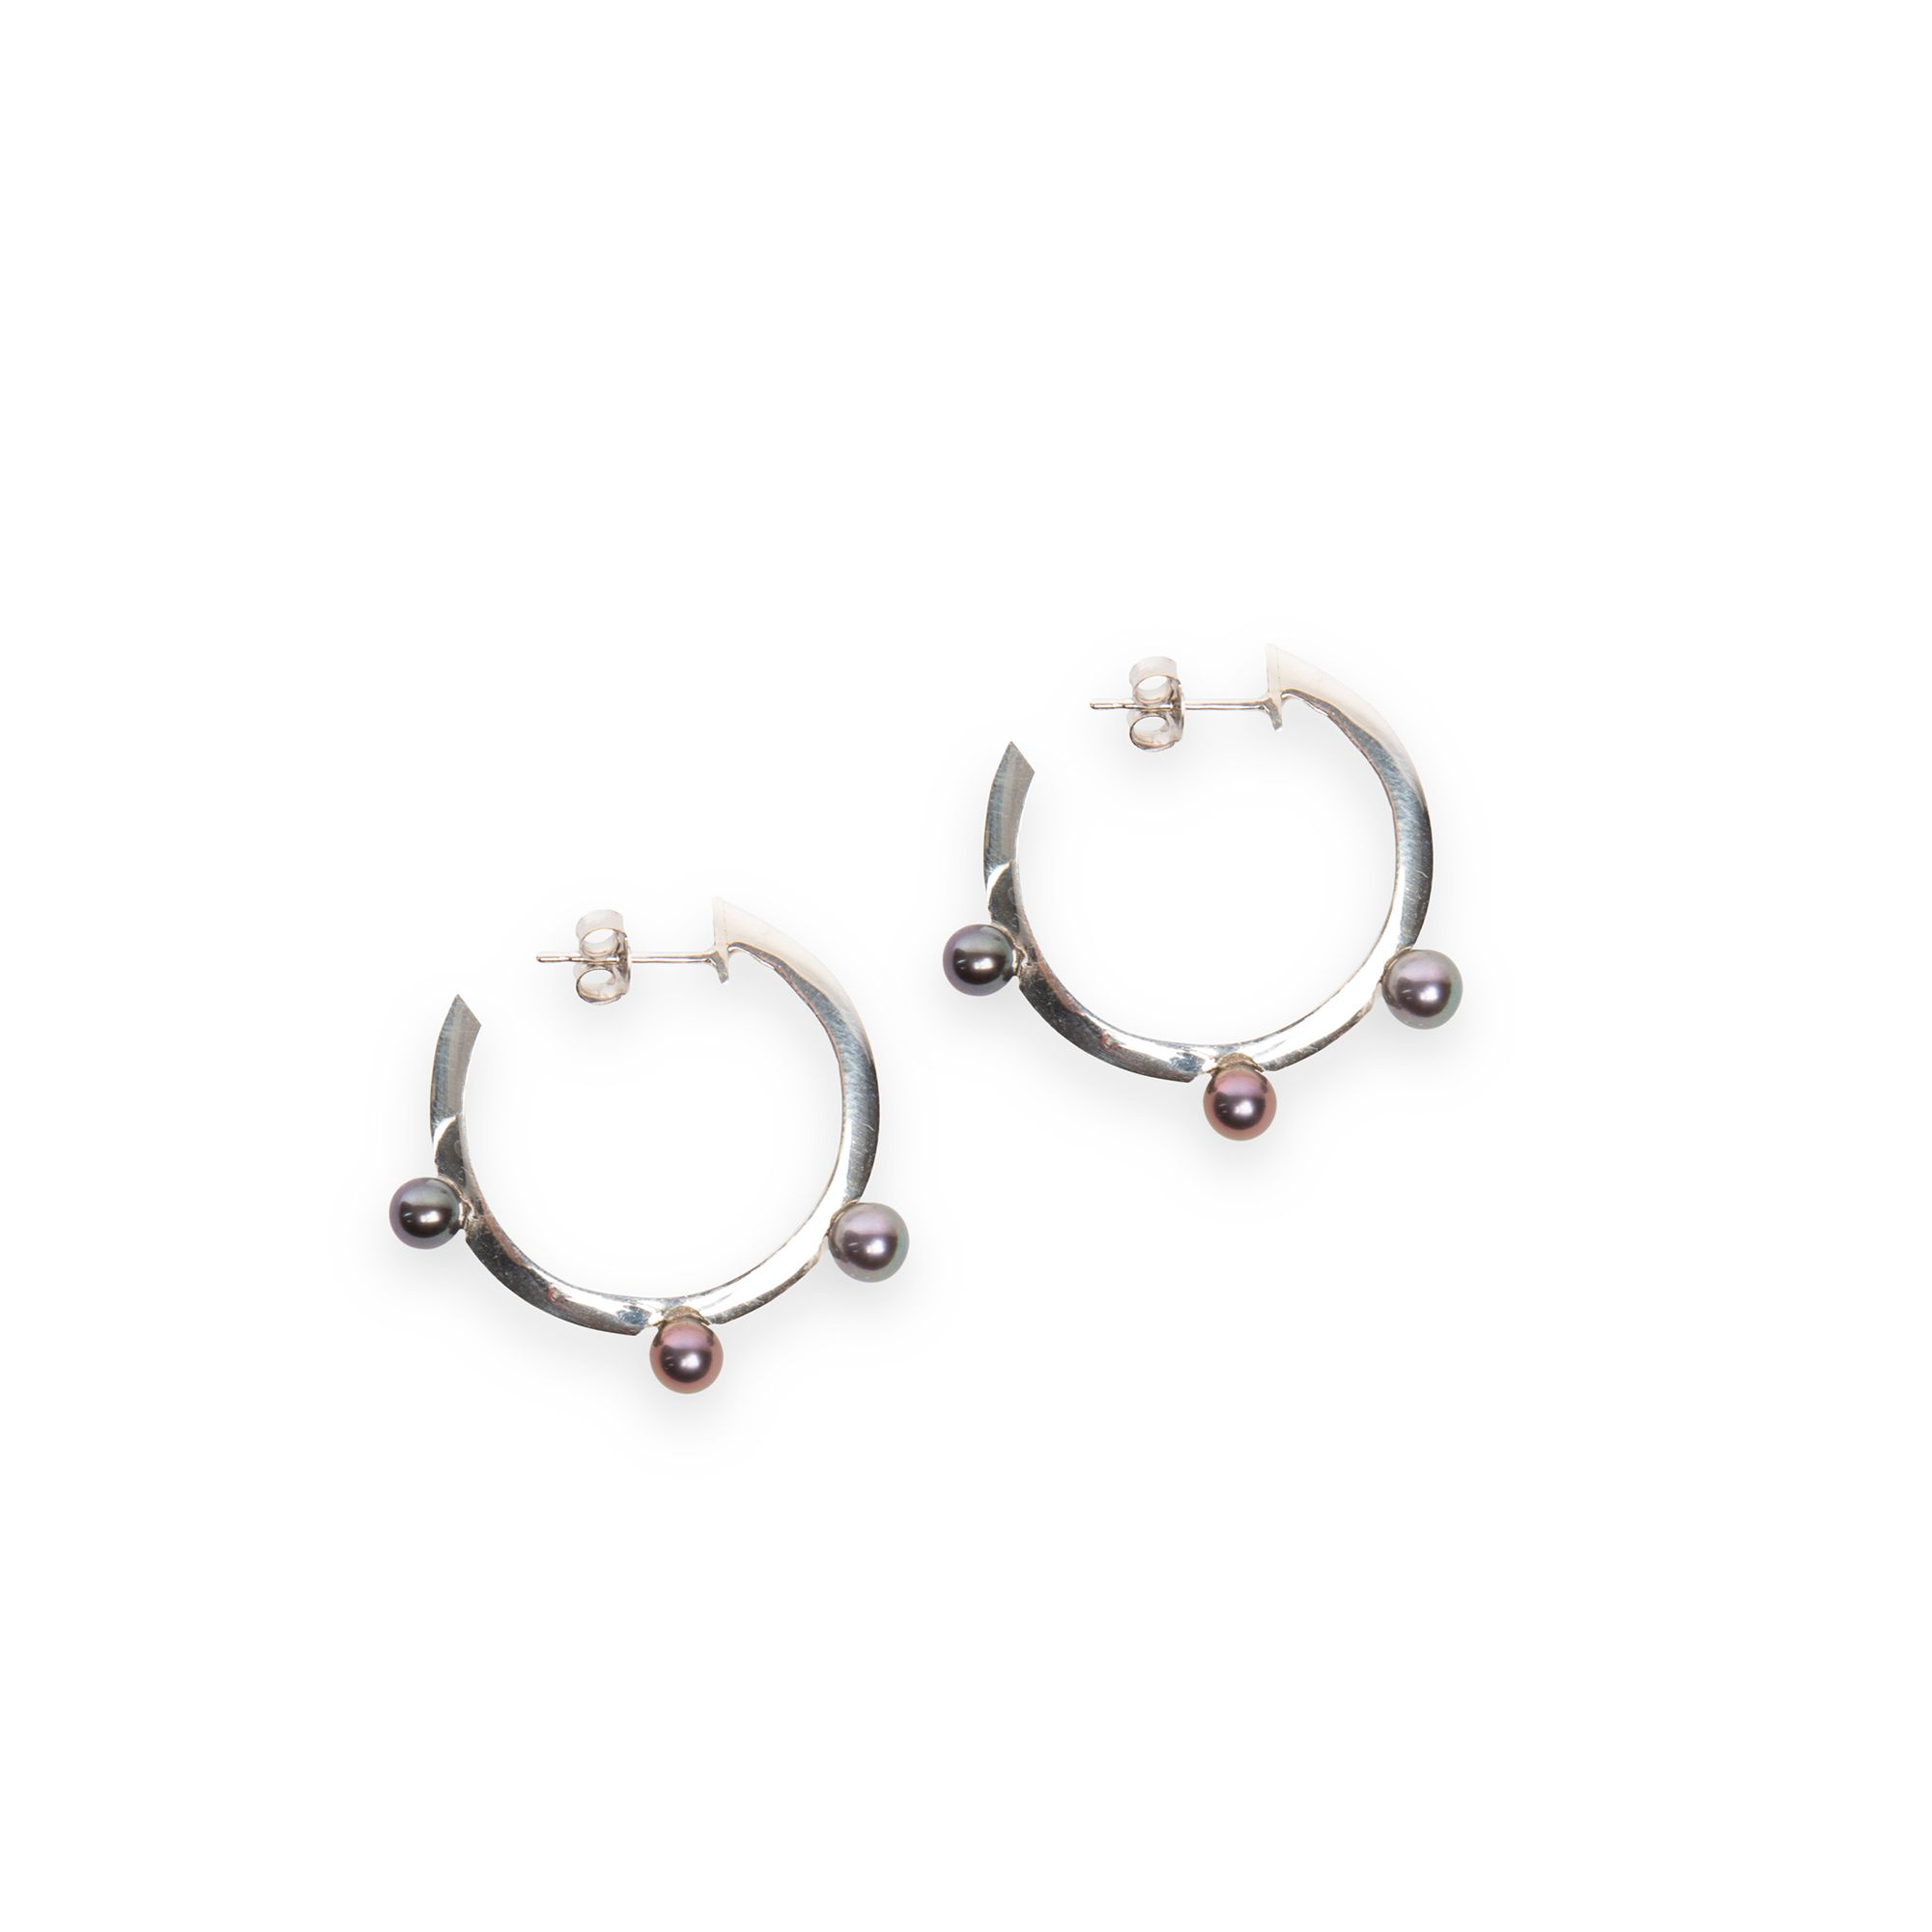 Xs hoop earrings with pearls Silver earrings with white pearls